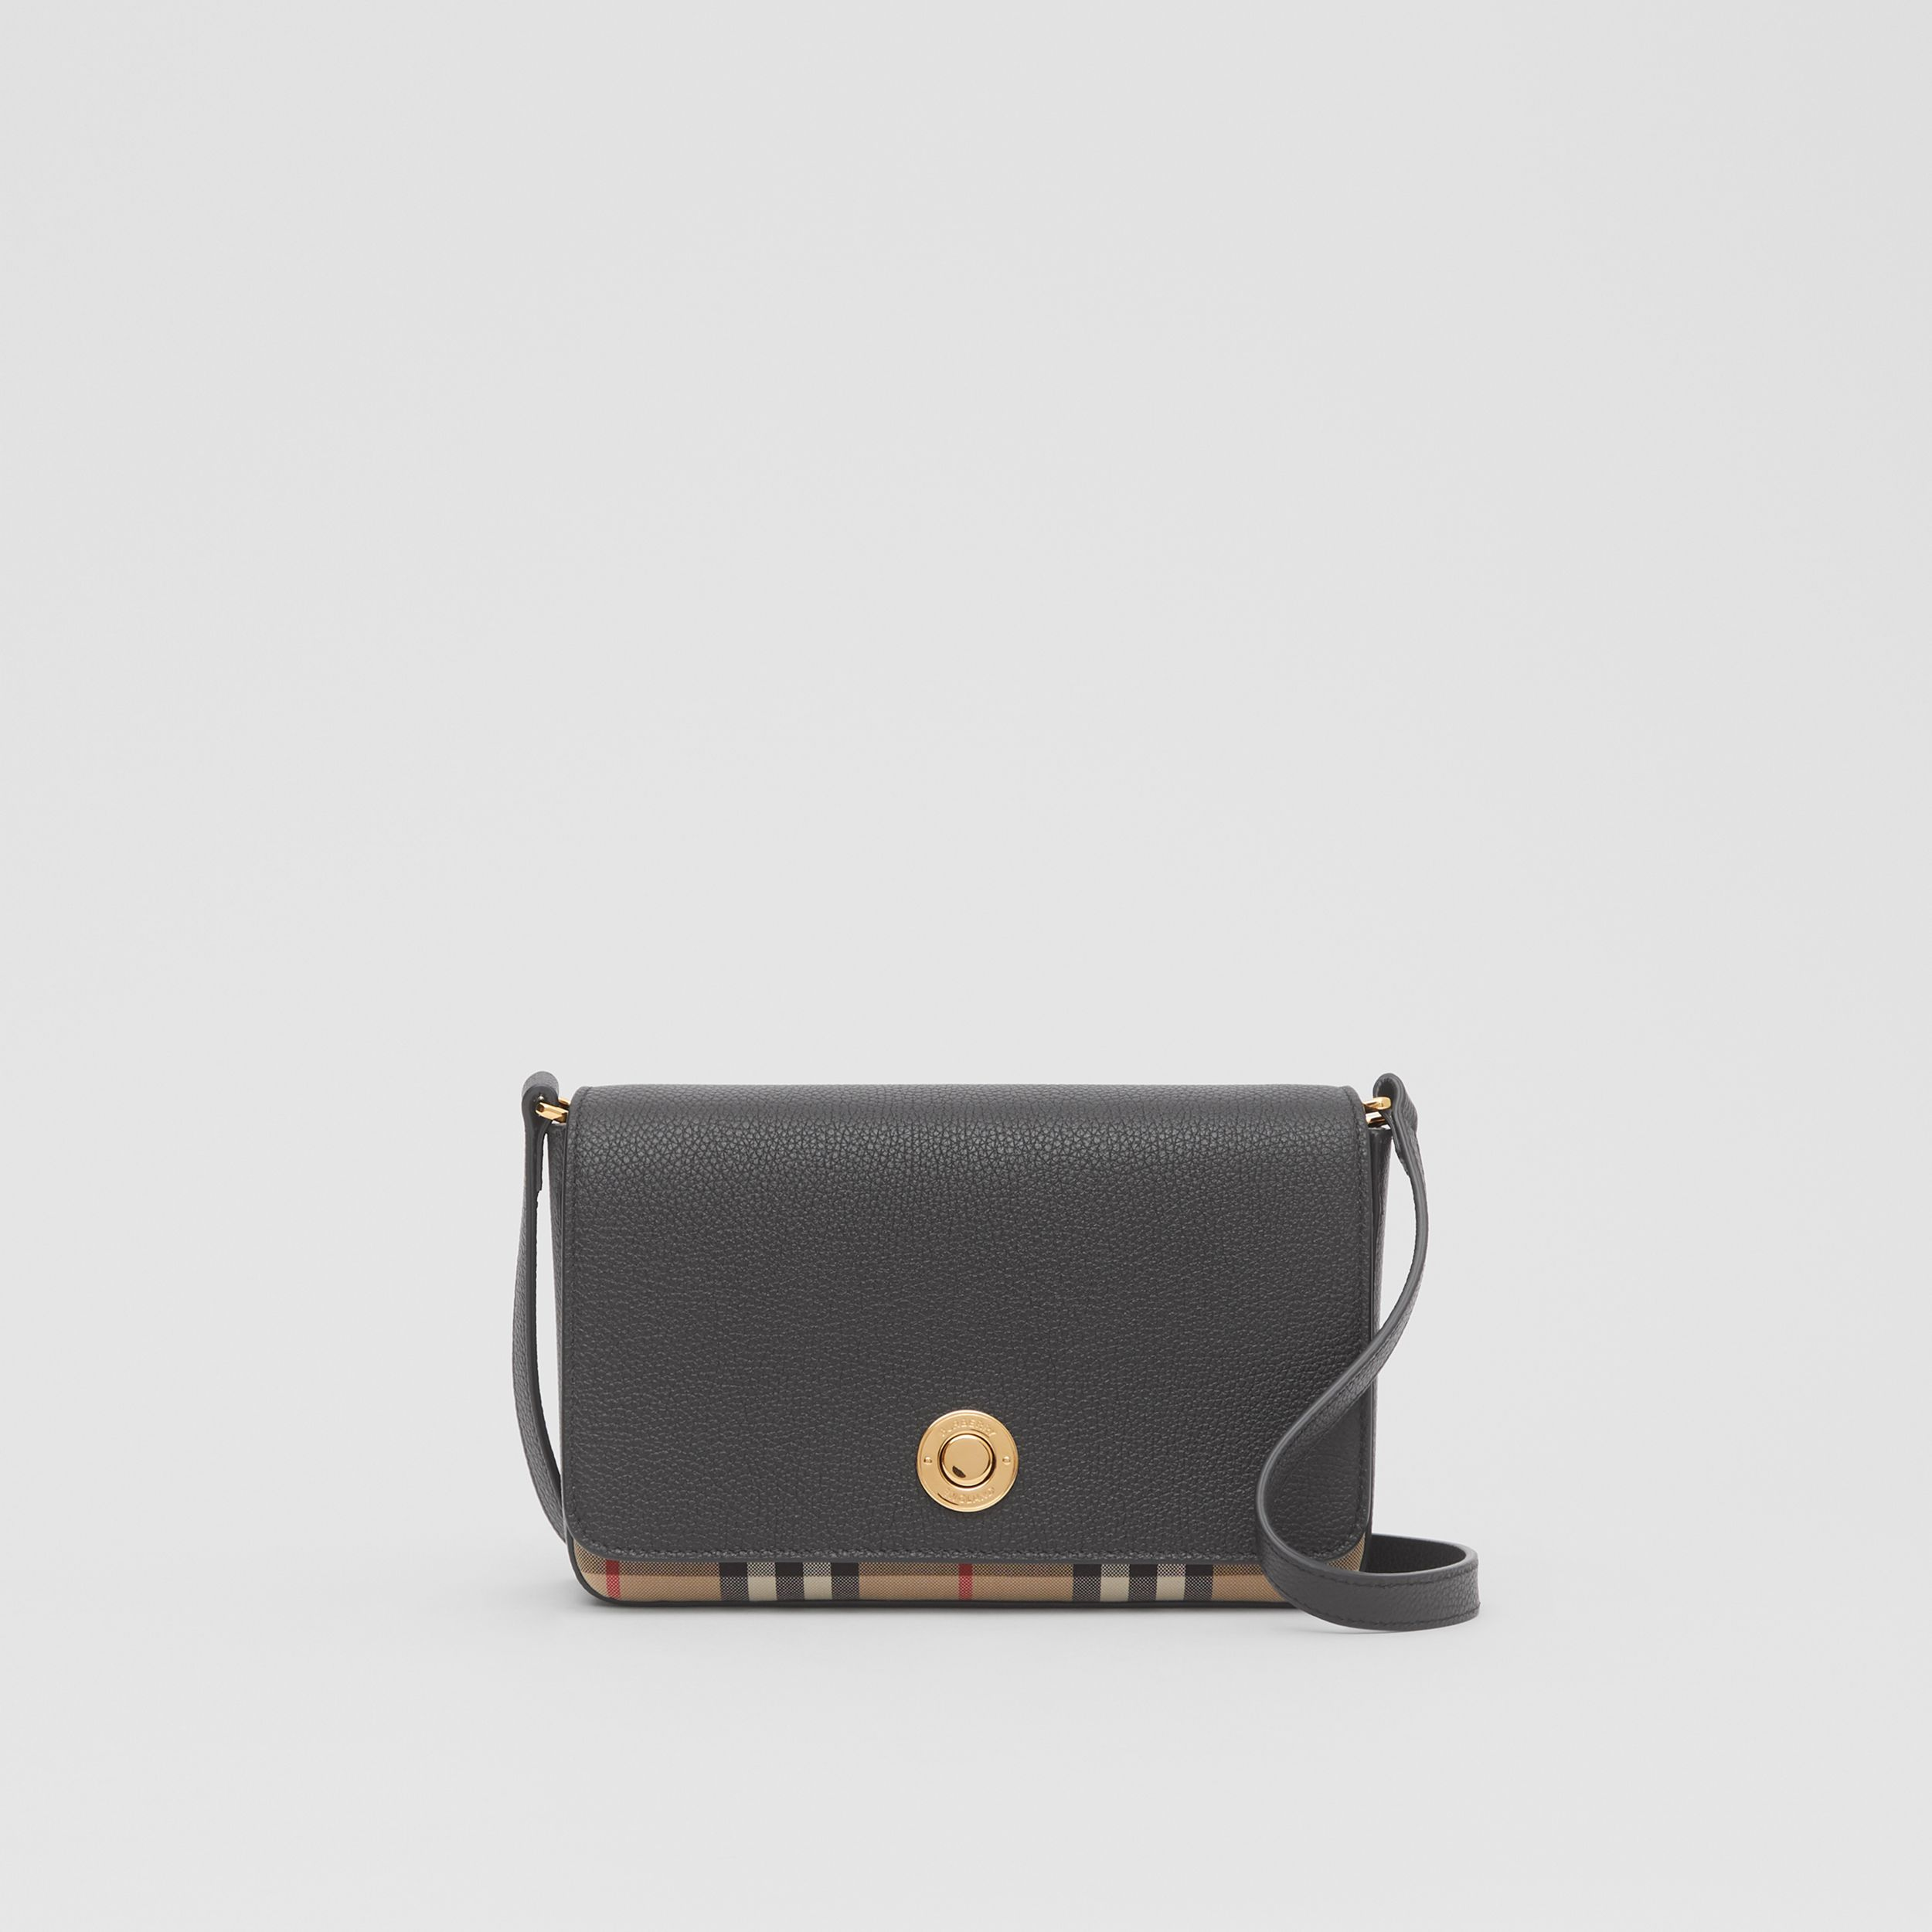 Small Leather and Vintage Check Crossbody Bag in Black - Women | Burberry - 1